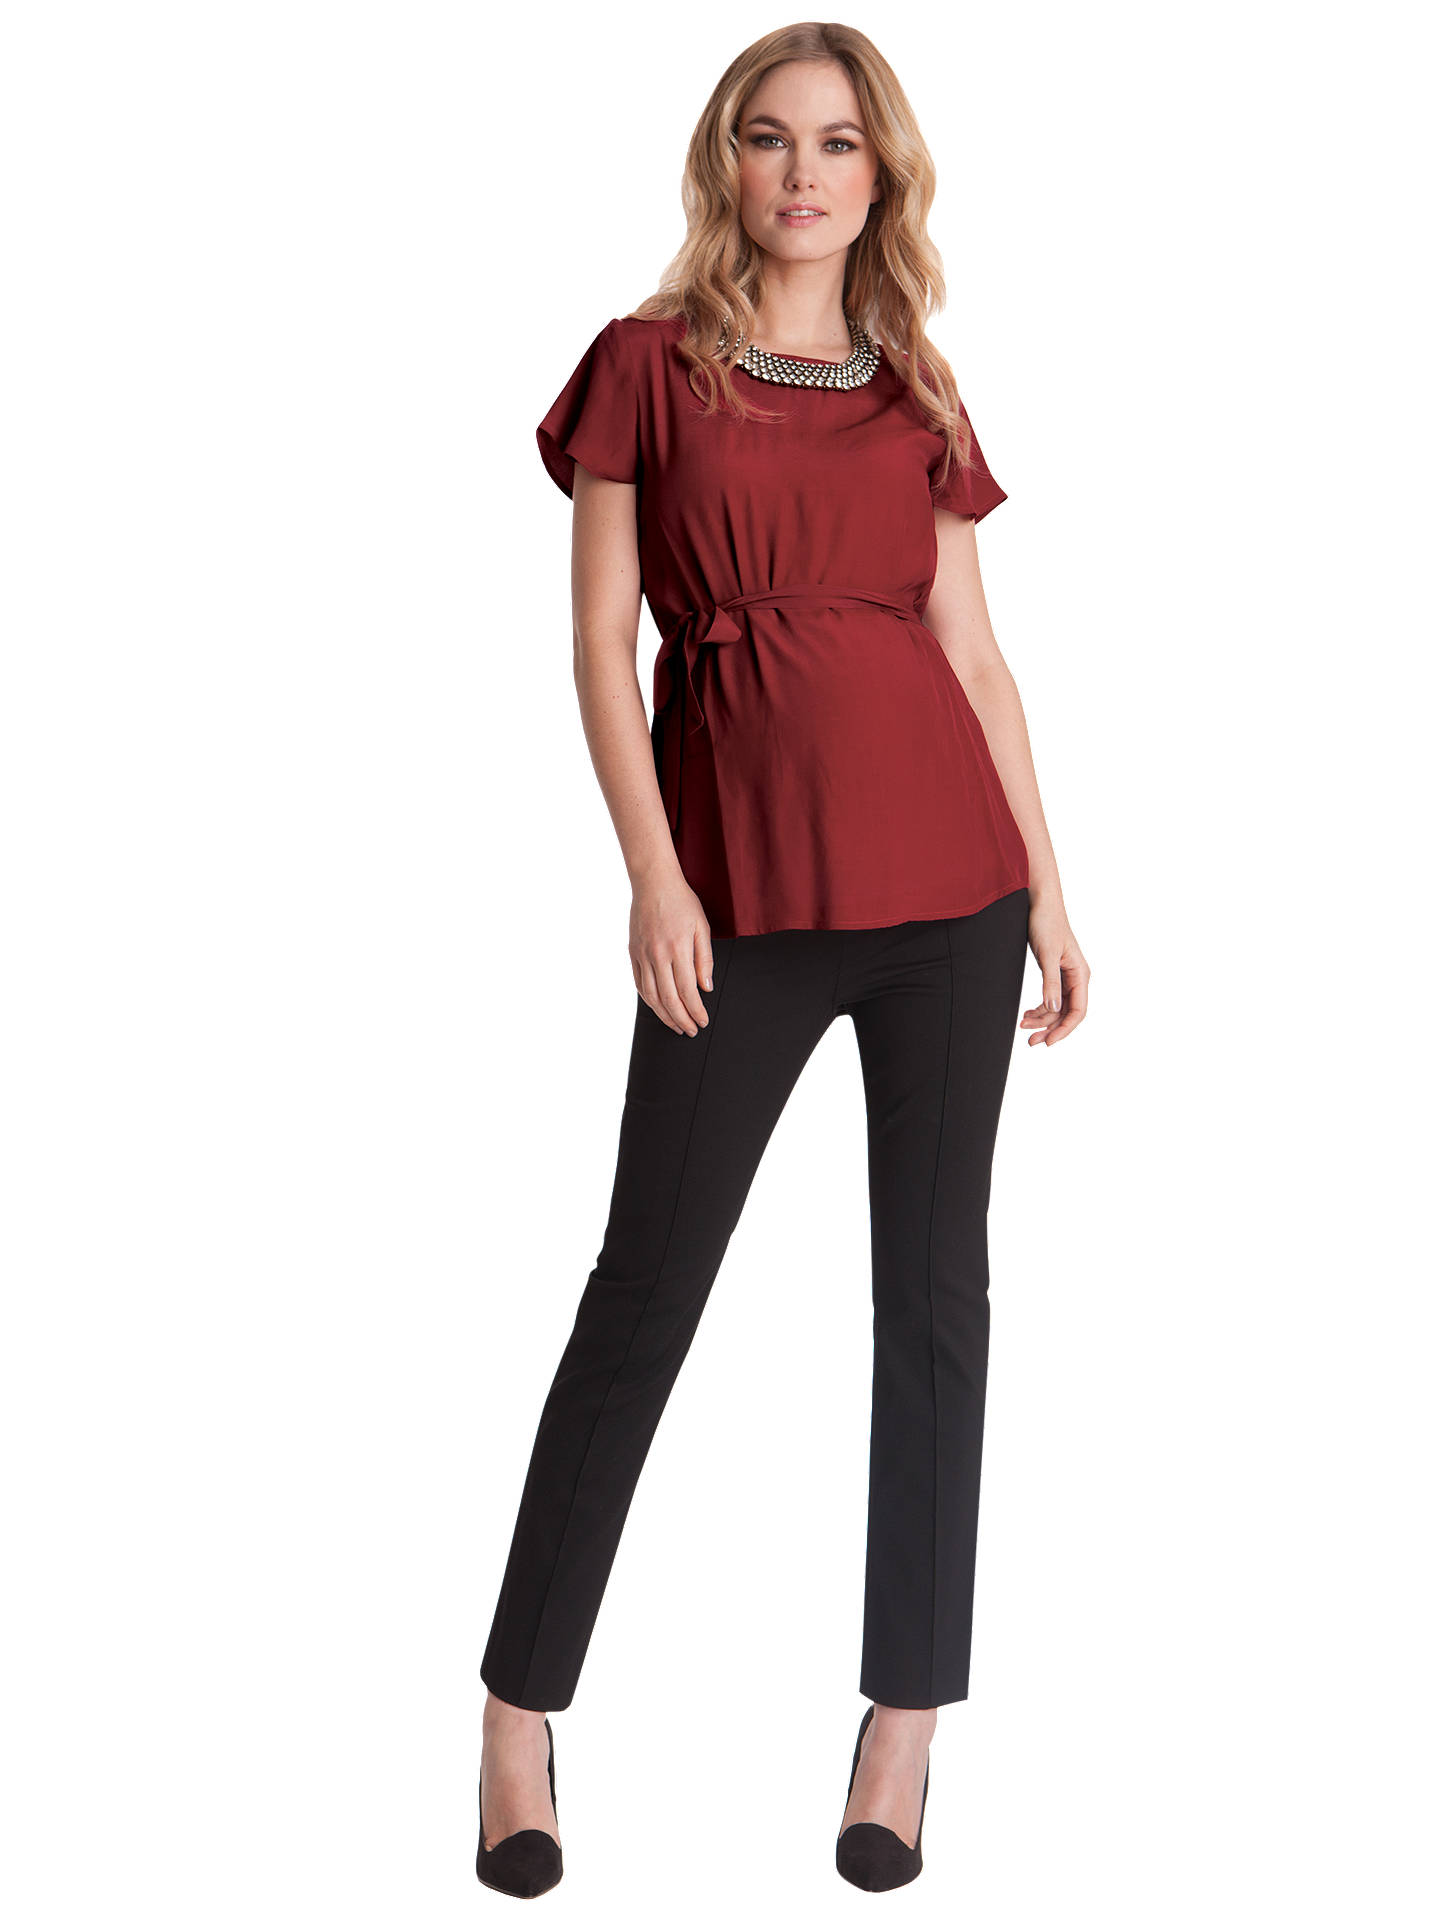 f00381b1bcfe0 ... Buy Séraphine Carrie Crop Maternity Trousers, Black, 8 Online at  johnlewis.com ...